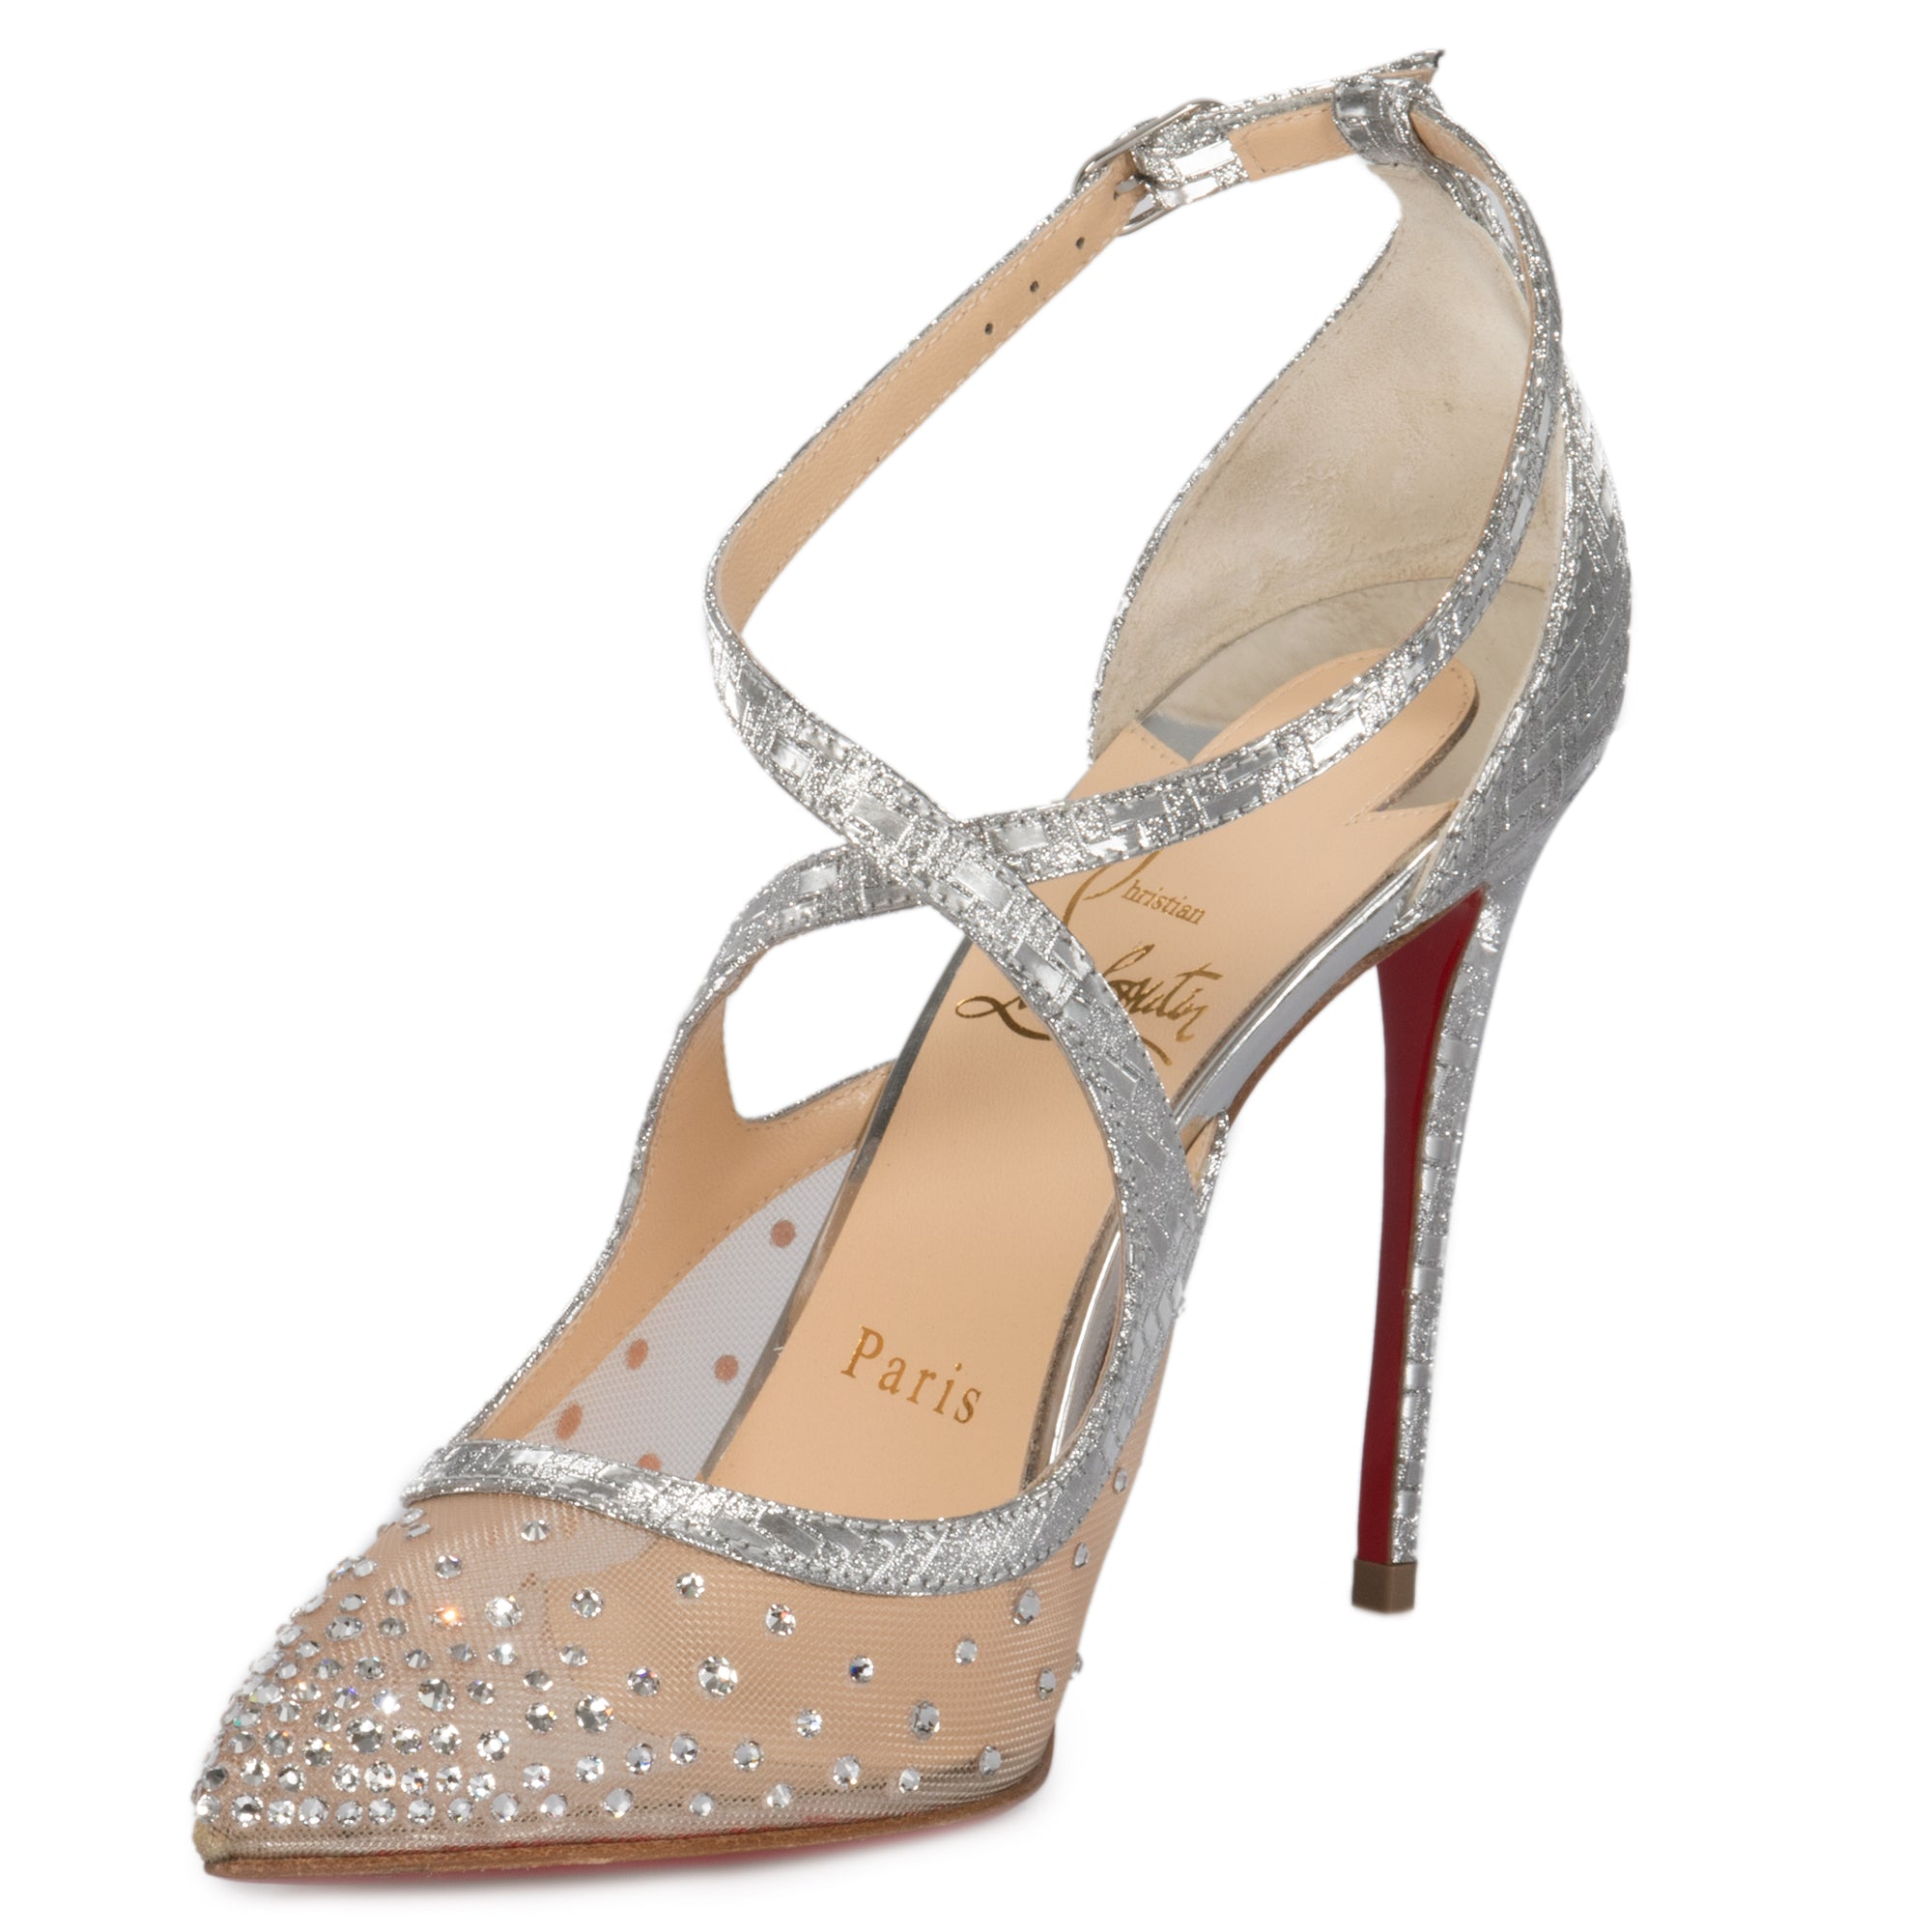 381517afe180 Christian Louboutin Twistissima Silver Strass Ankle-Strap 100mm Pumps